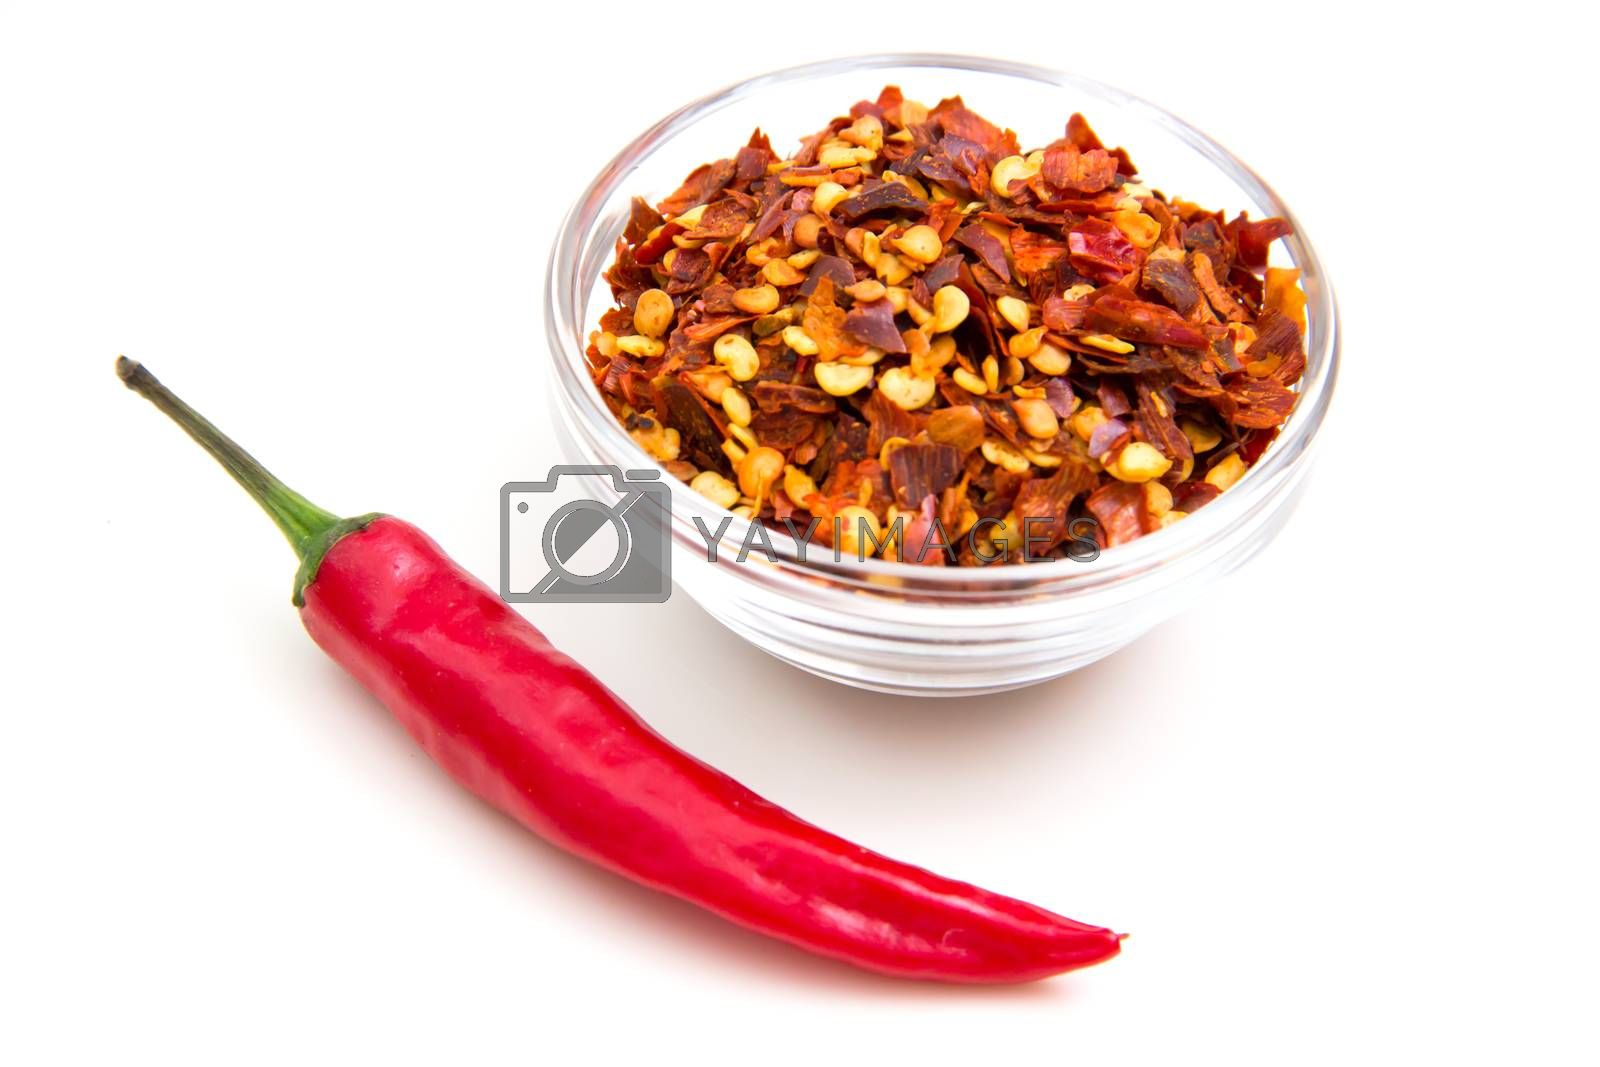 Ground hot pepper on a white background